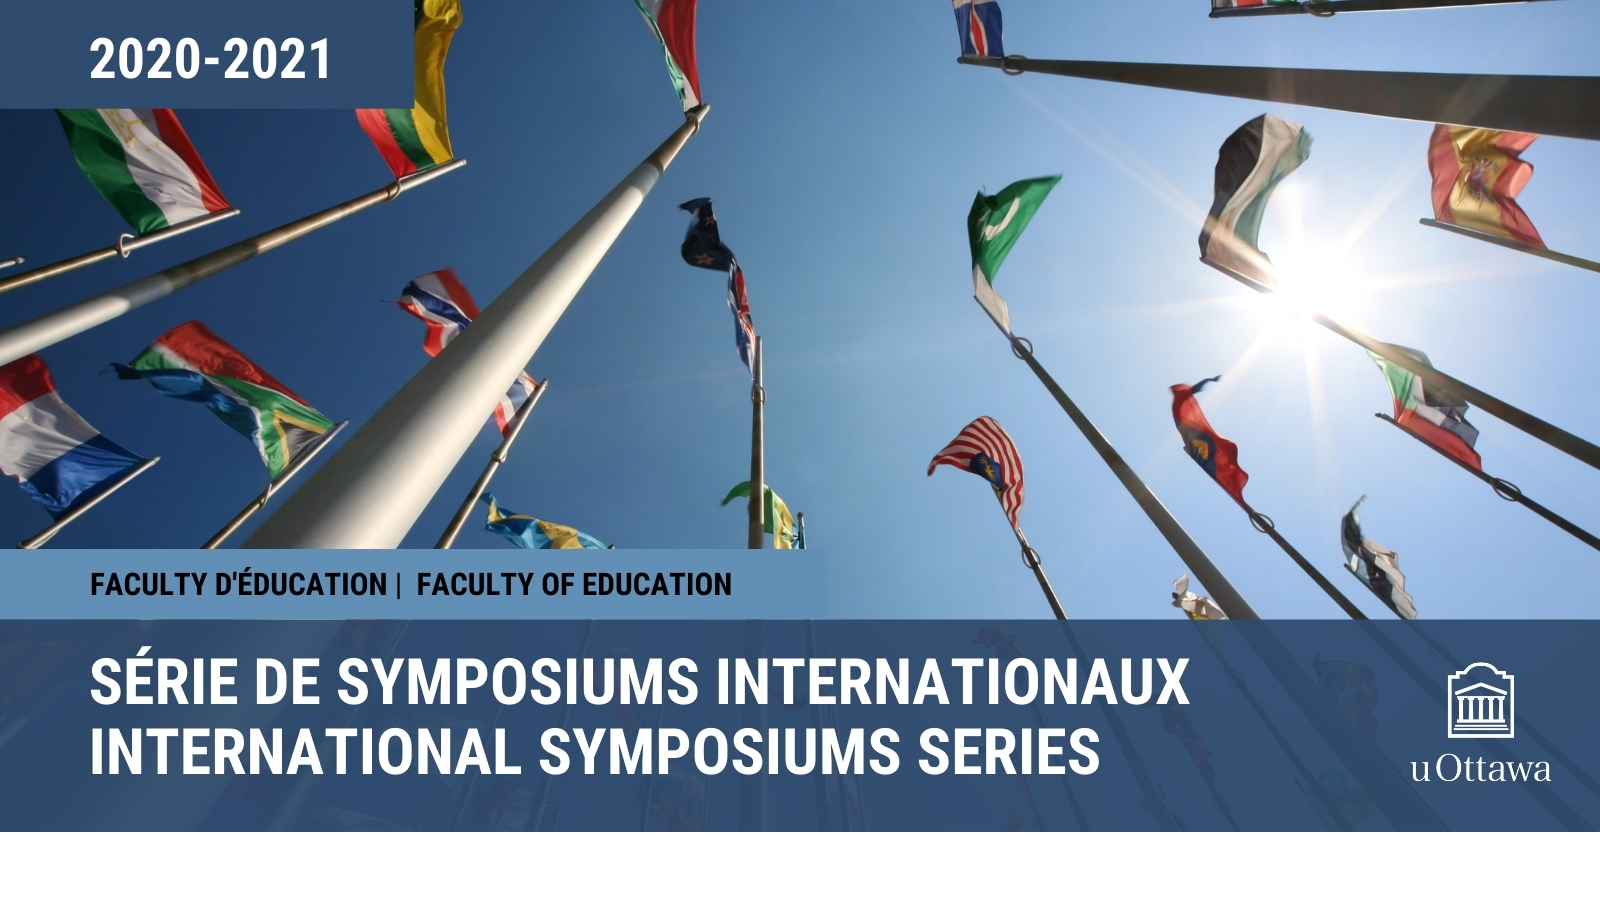 International Symposiums 2020-2021, Flags of the world against blue sky